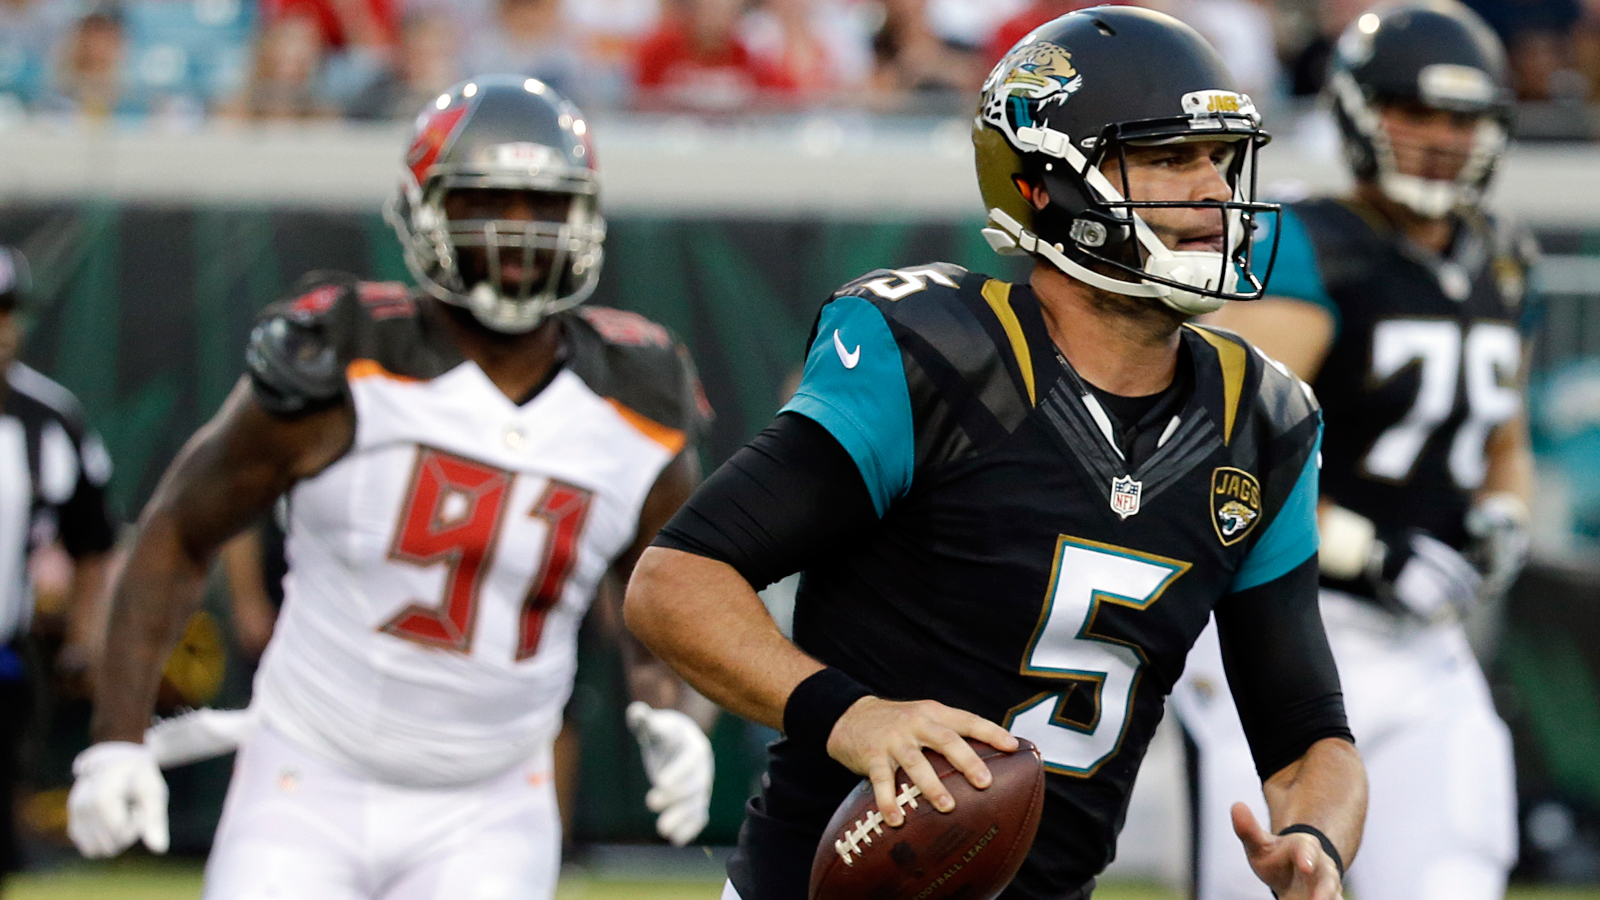 Blake Bortles tosses 2 TDs early but Buccaneers rally past Jaguars